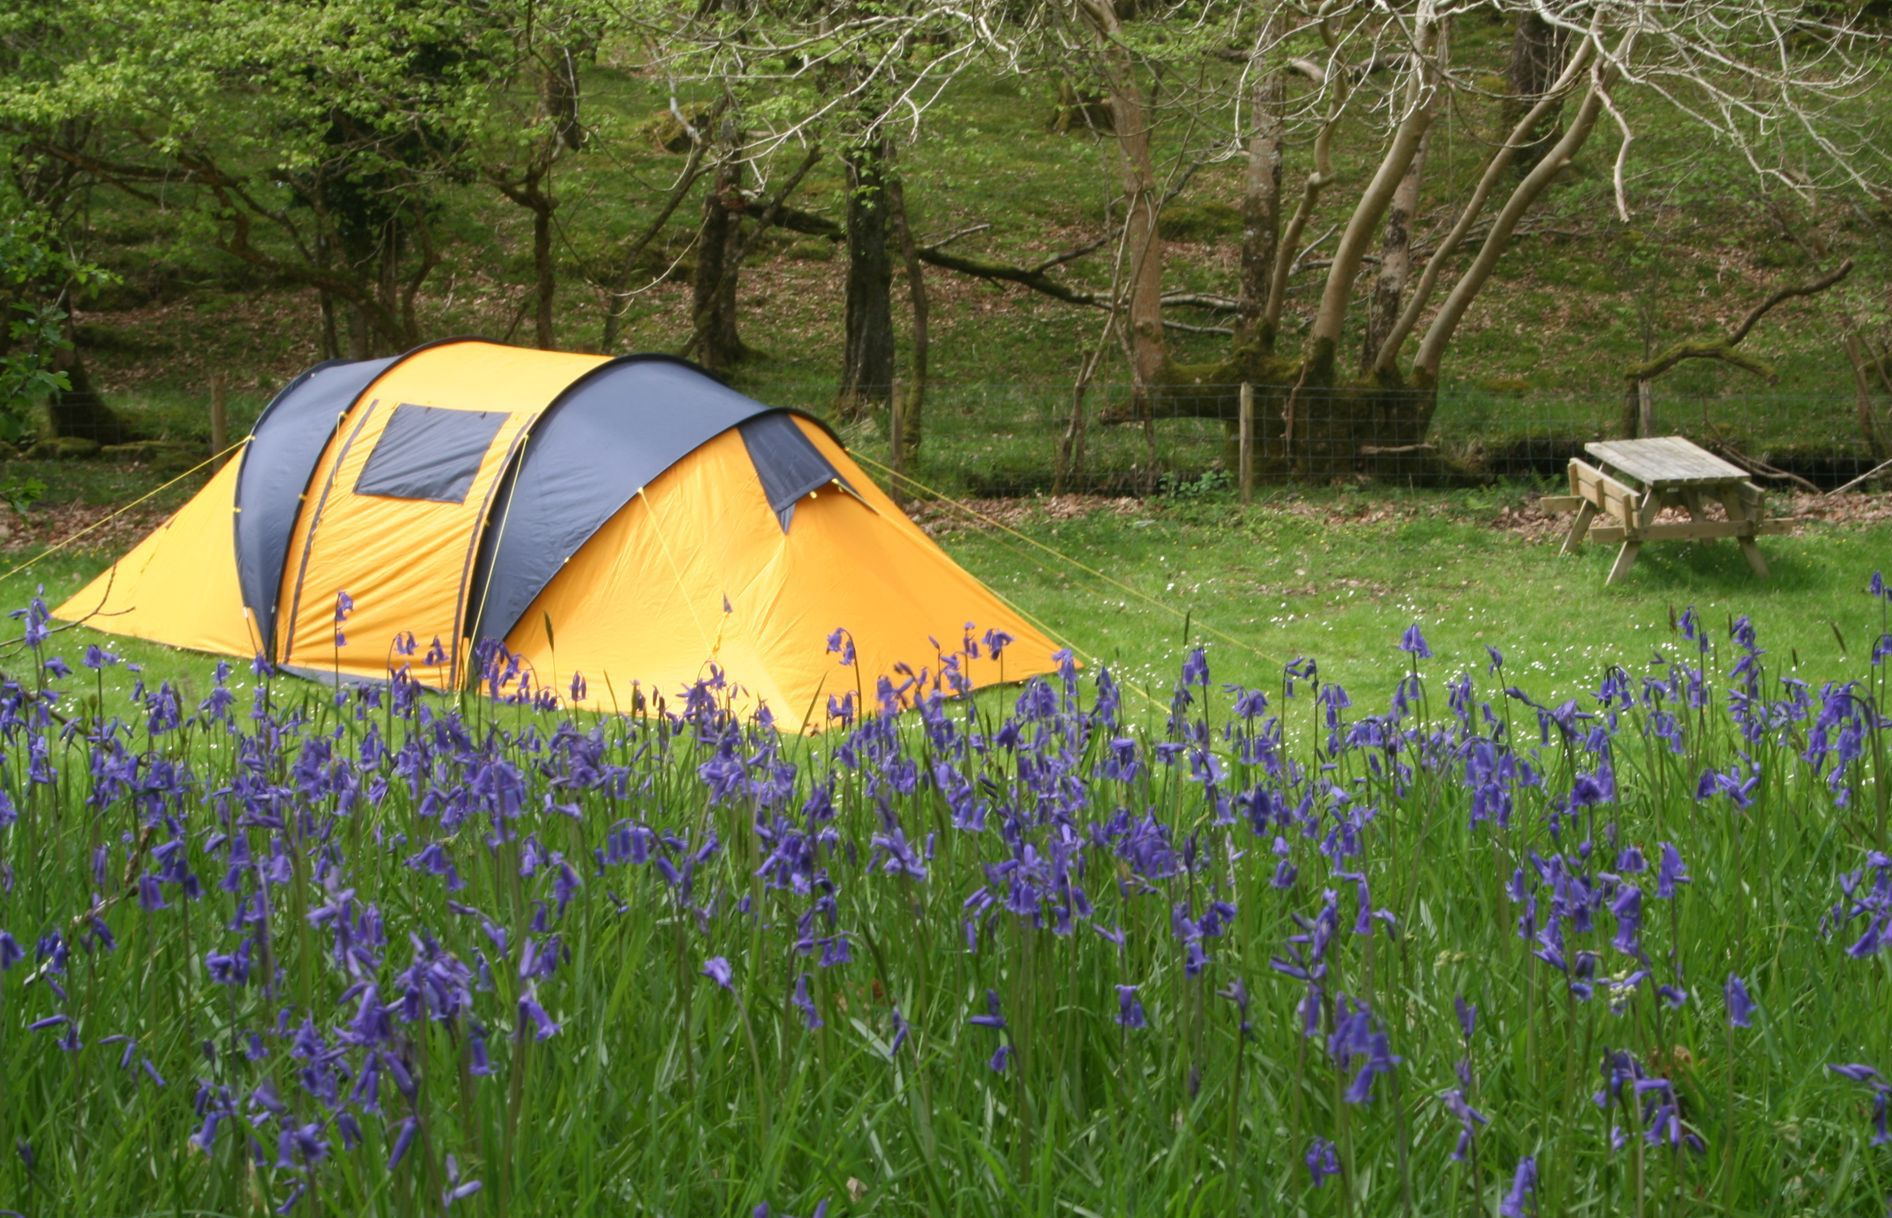 Campsites in Wales – The Best Camping Locations in Wales